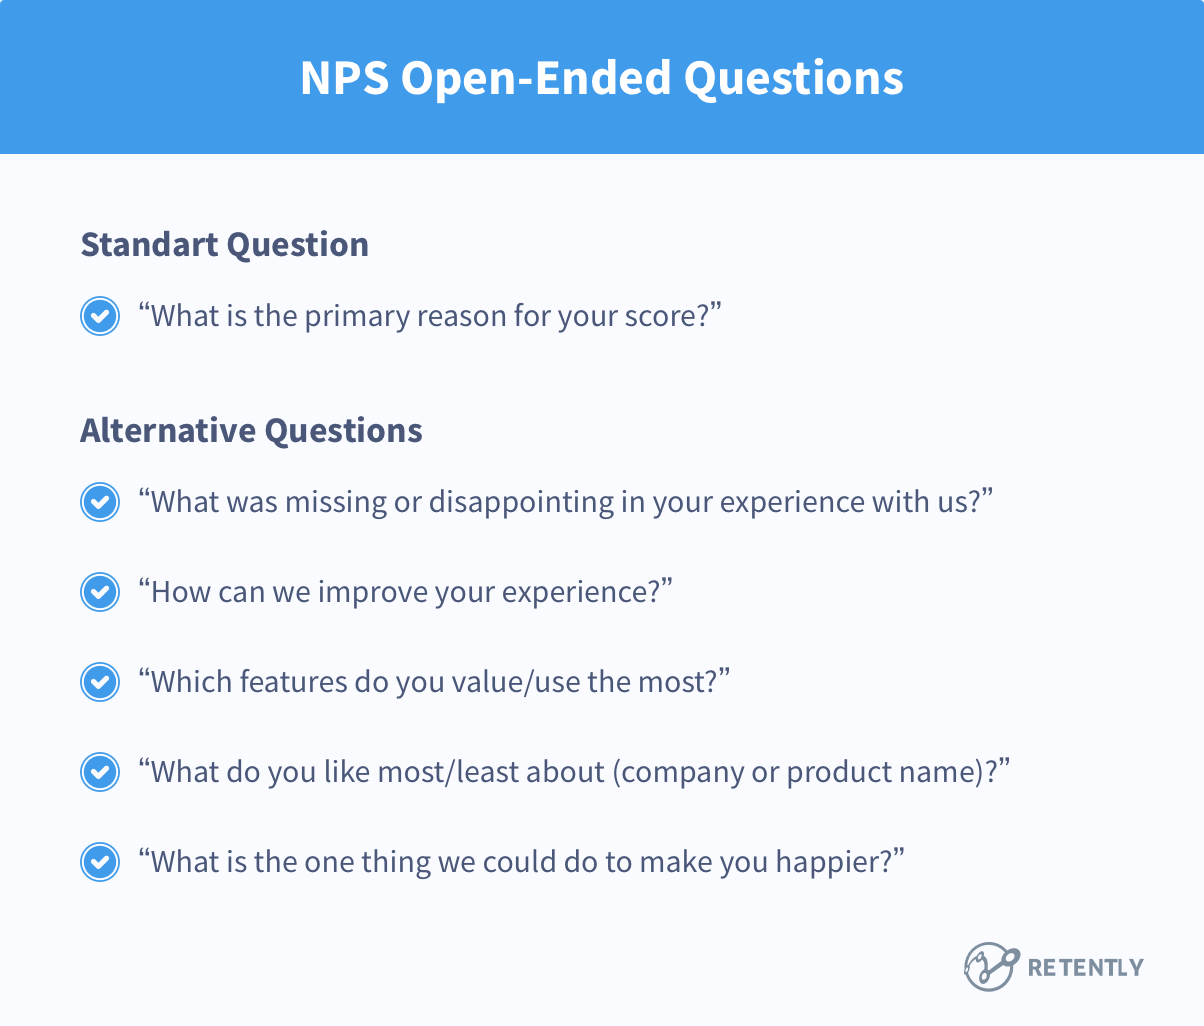 011 Research Paper Market Questionnaire Sample Questions Pdf Open Ended Nps Striking Full